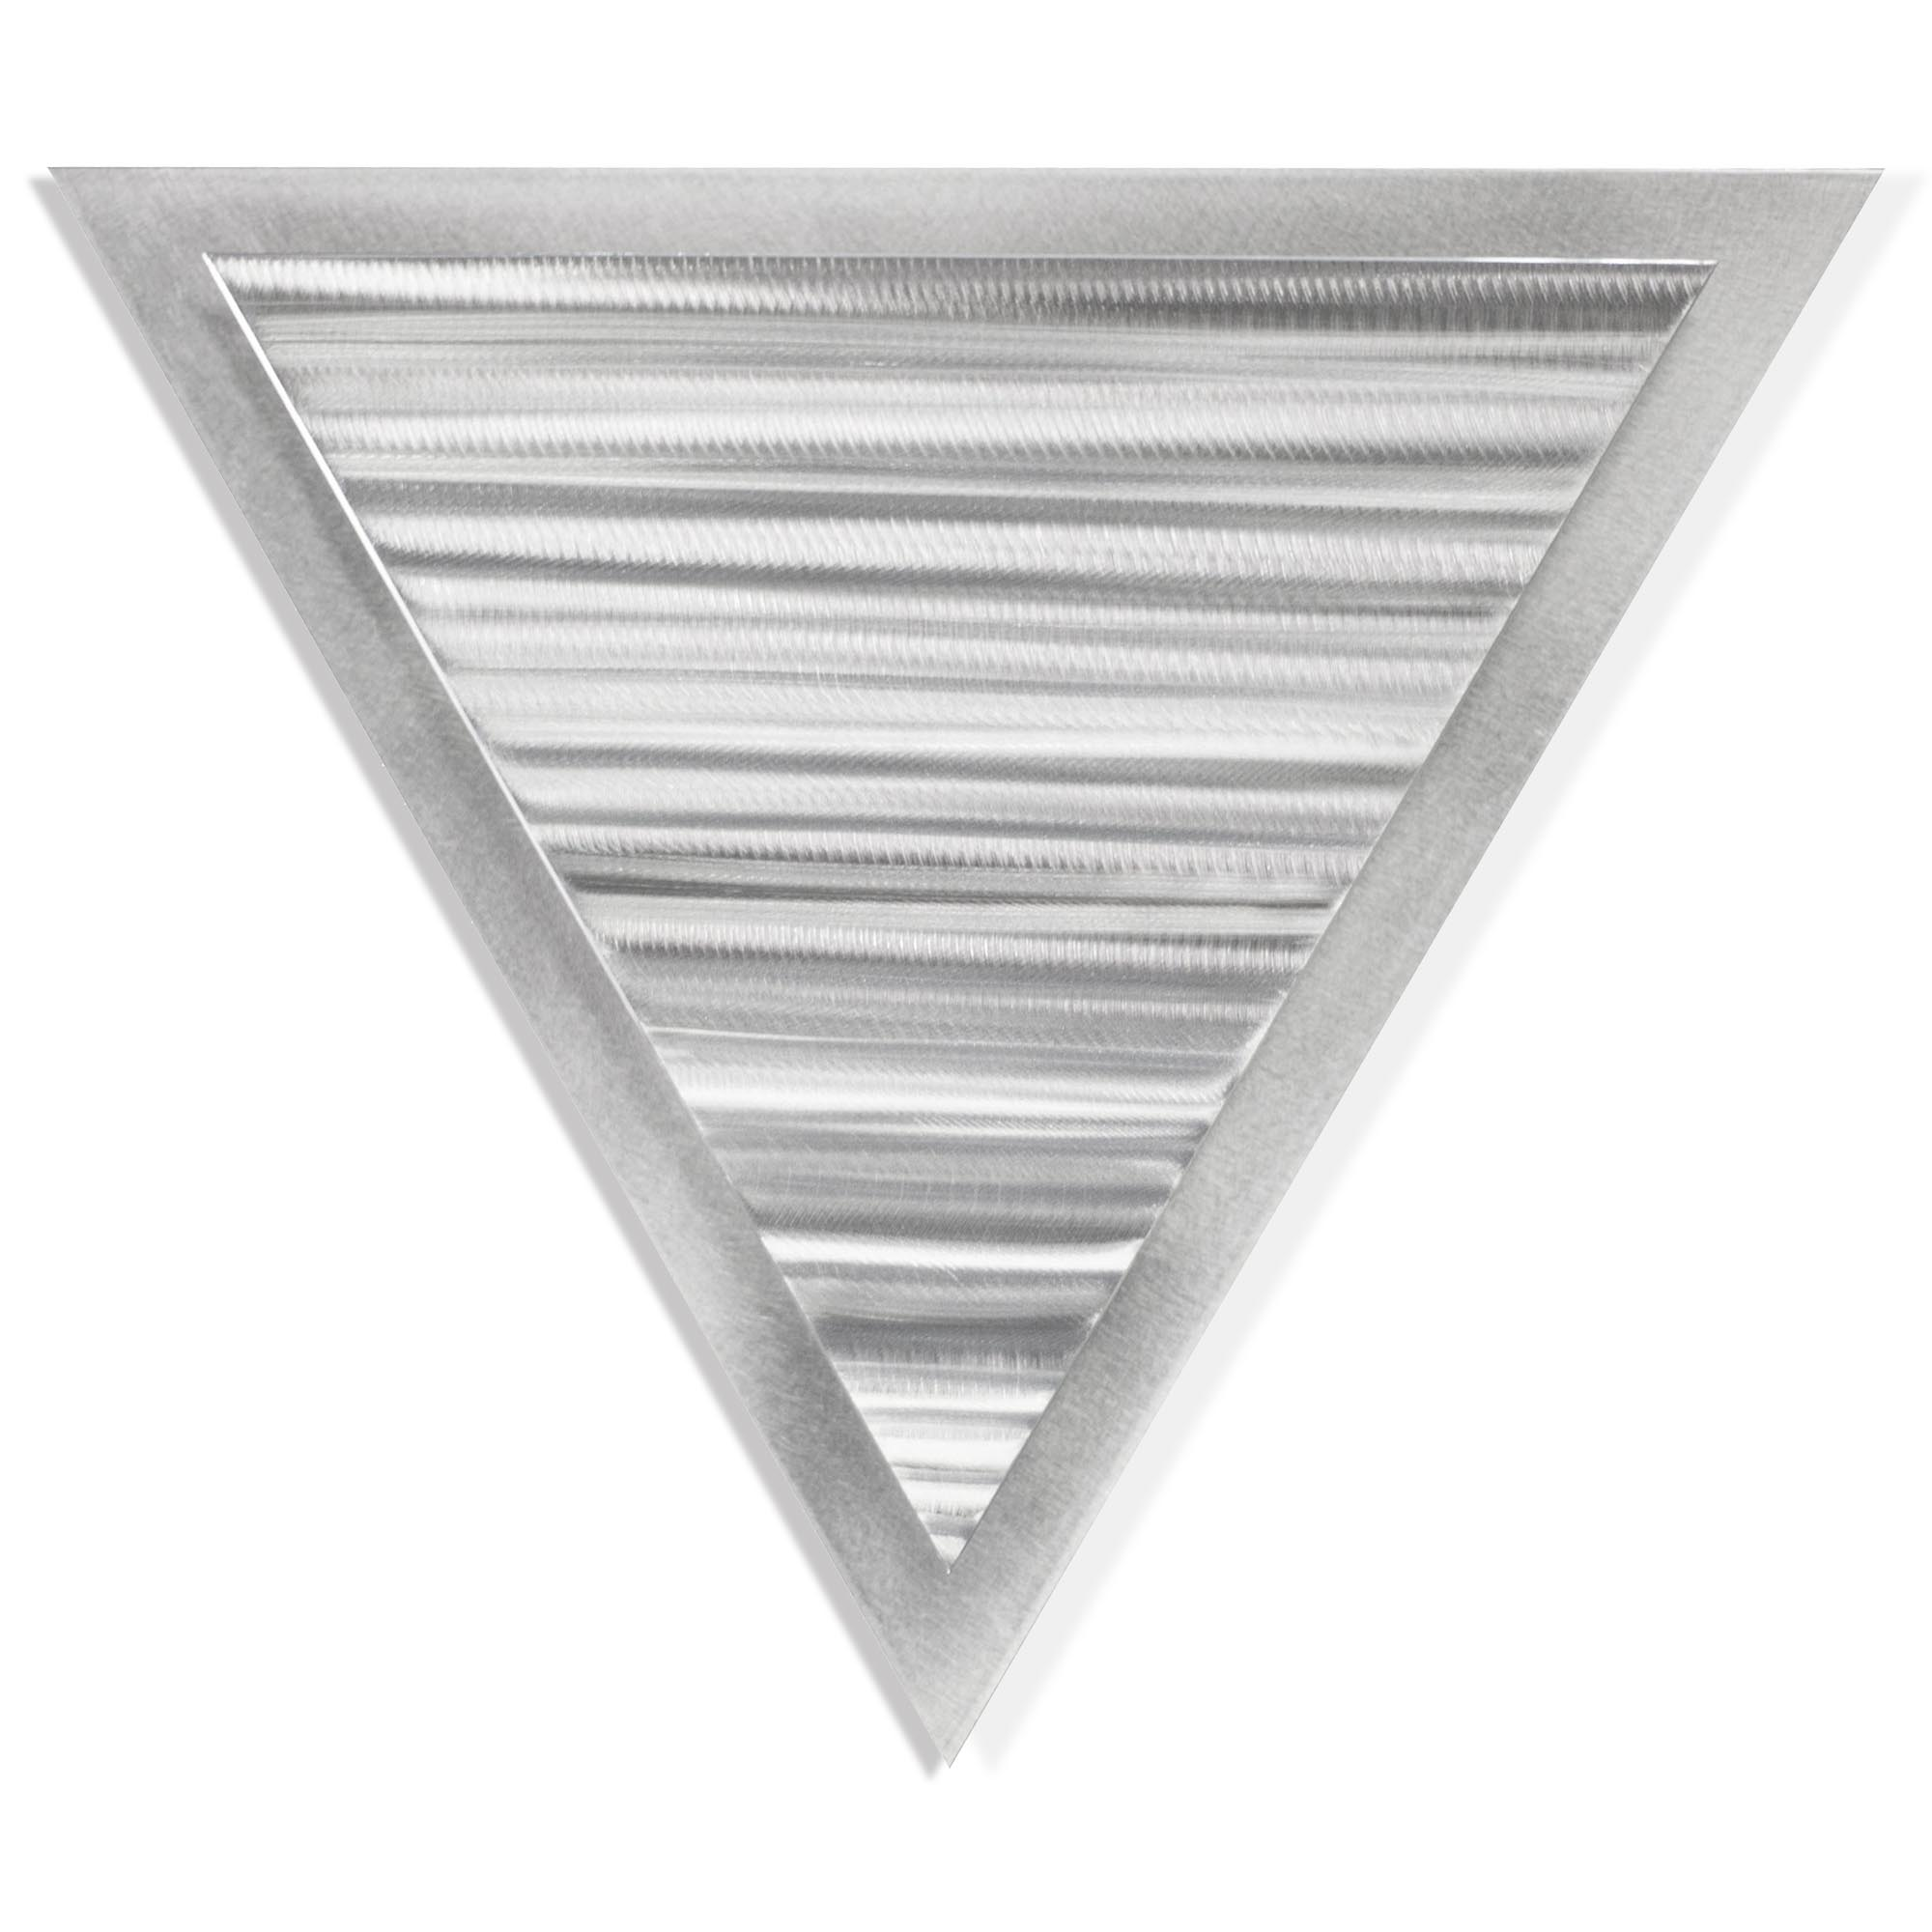 Helena Martin 'Strata Angle' 15in x 13in Modern Metal Art on Ground Metal